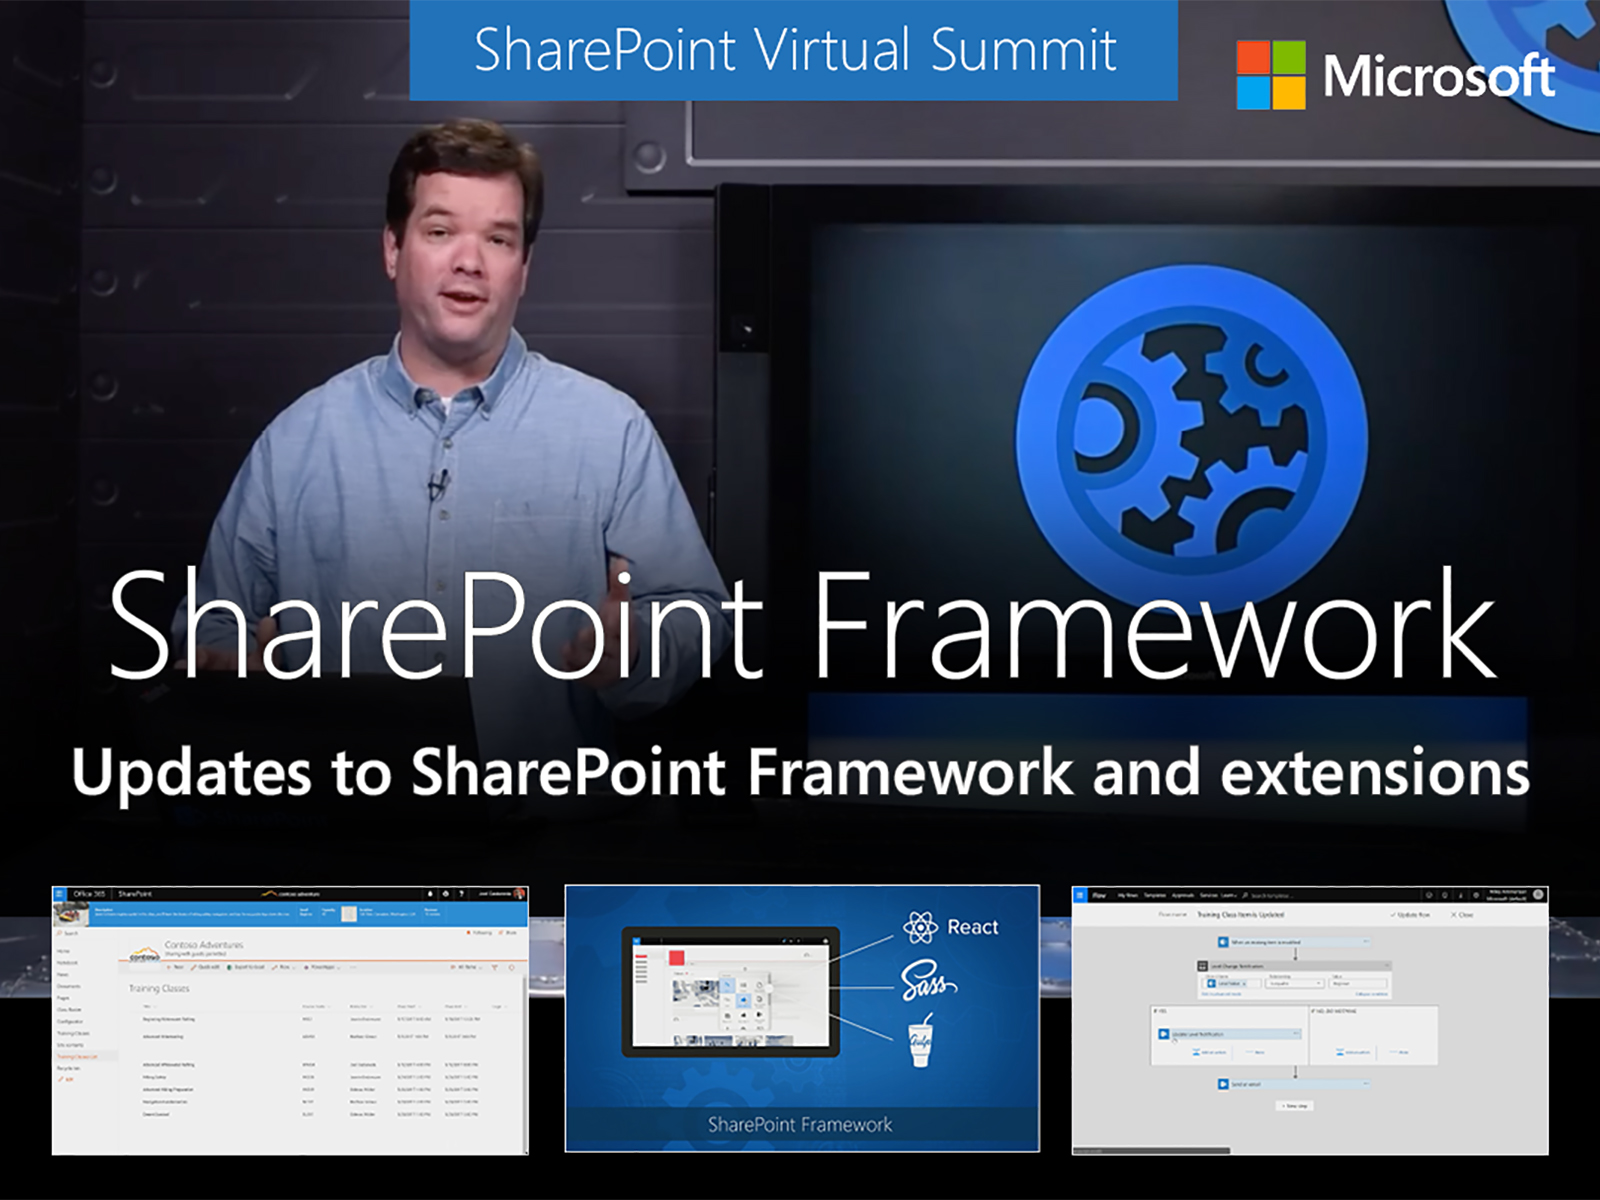 Artwork for Updates to the SharePoint Framework with SharePoint Framework extensions